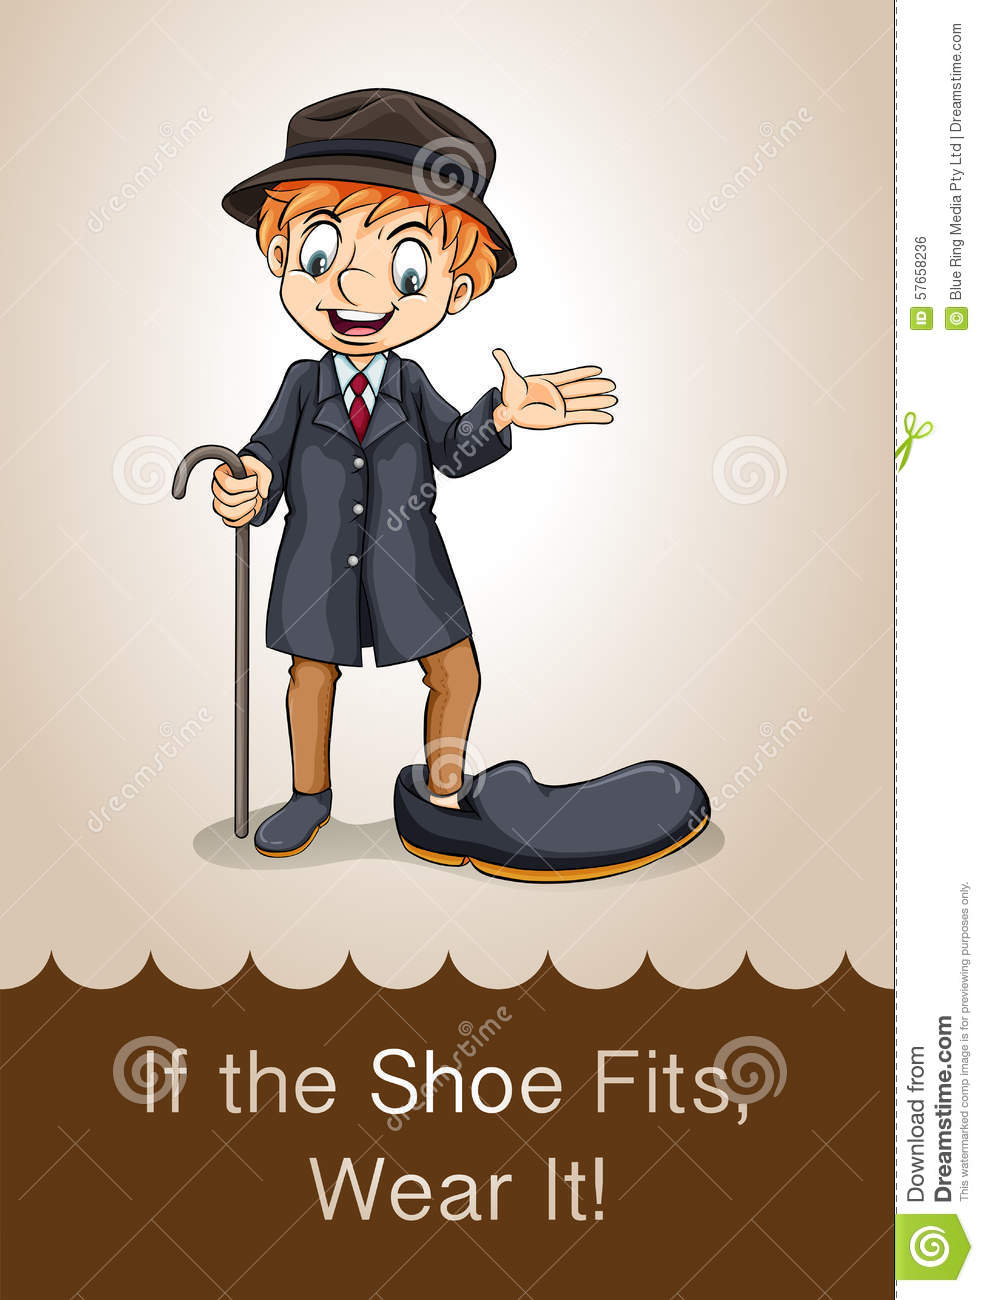 If The Shoe Fits Wear It Idiom